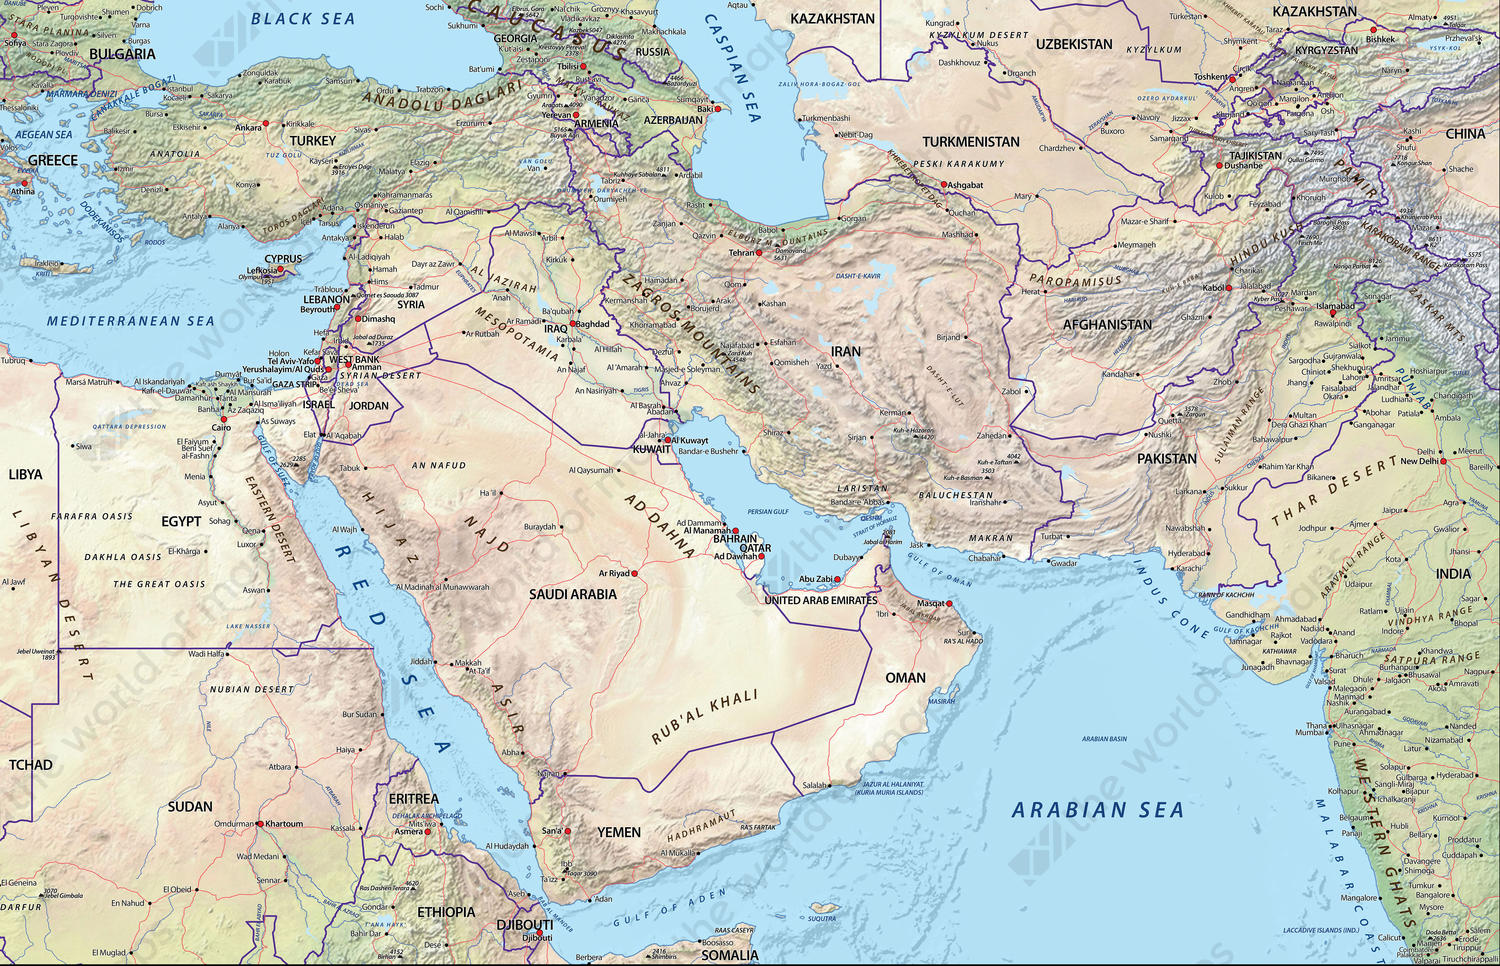 Middle East Map.Digital Physical Map Middle East 634 The World Of Maps Com